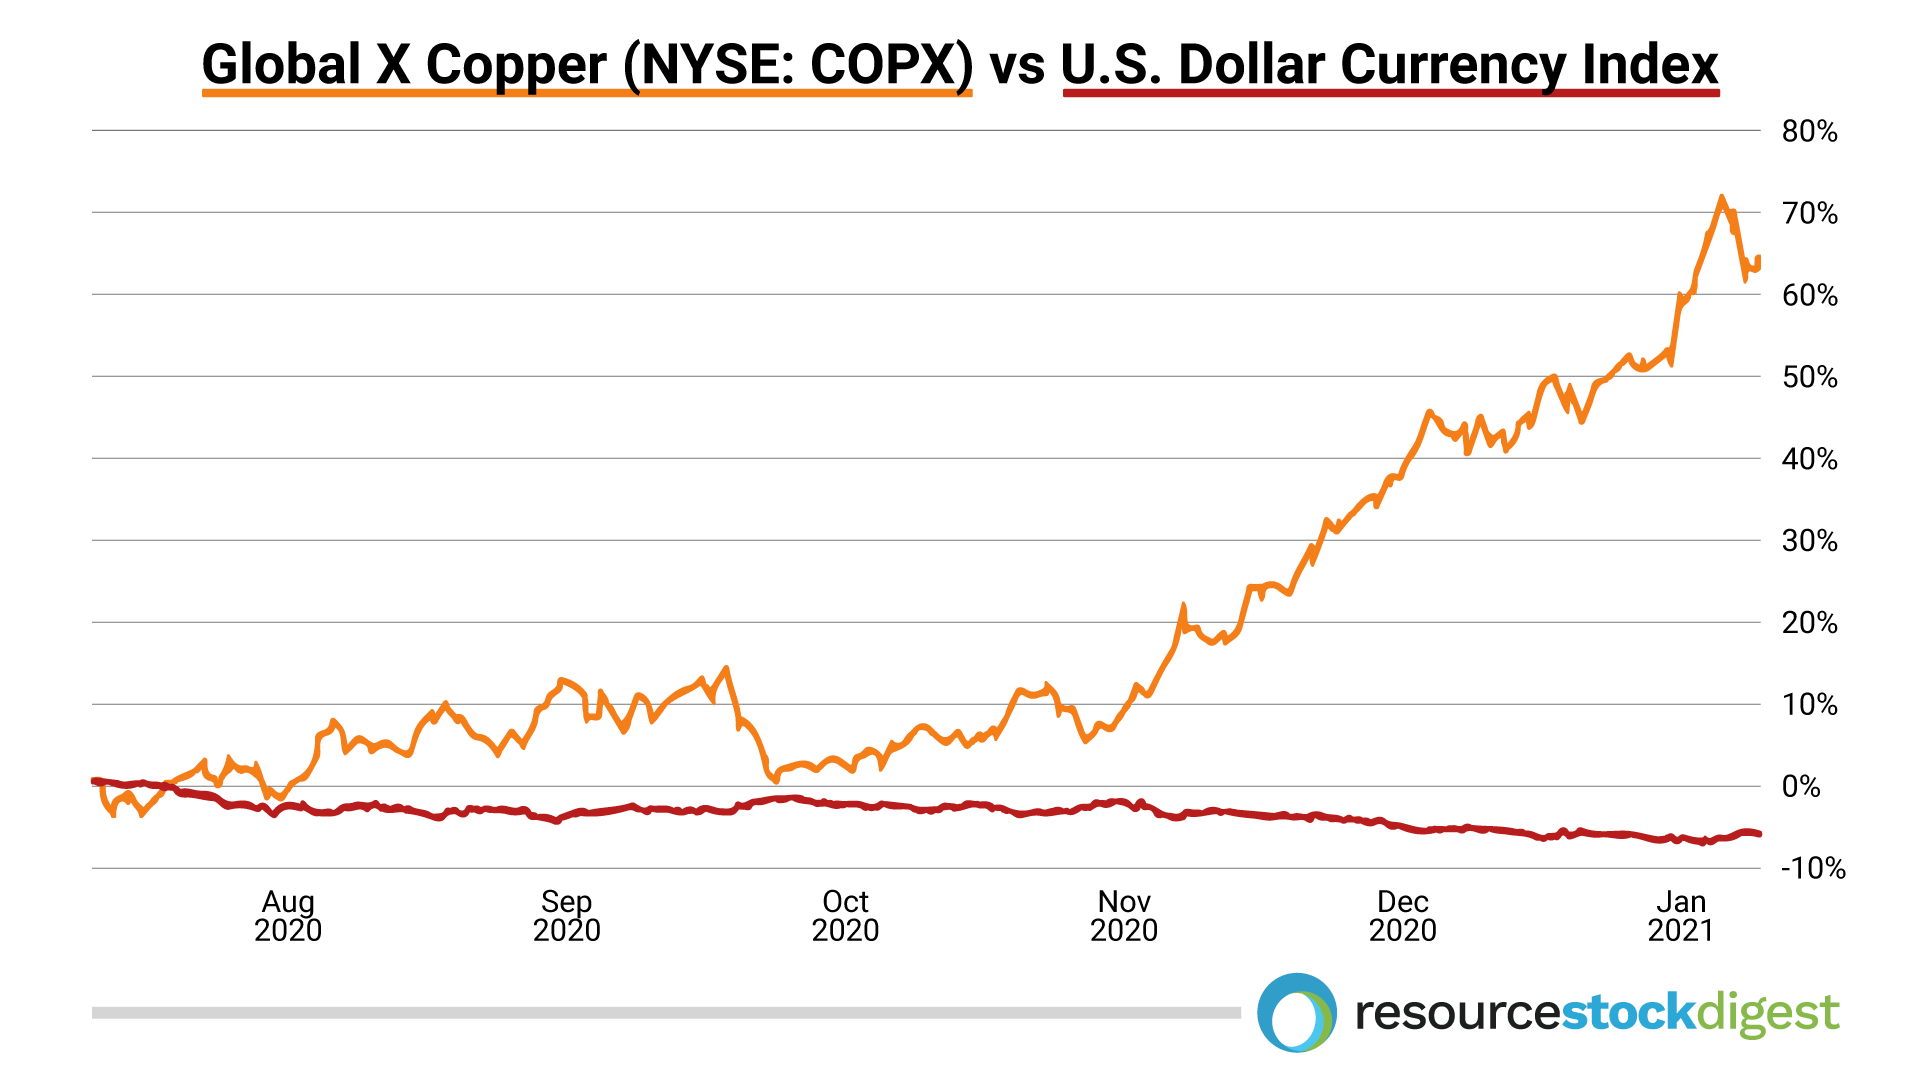 global-x-copper-vs-us-dollar-currency-index